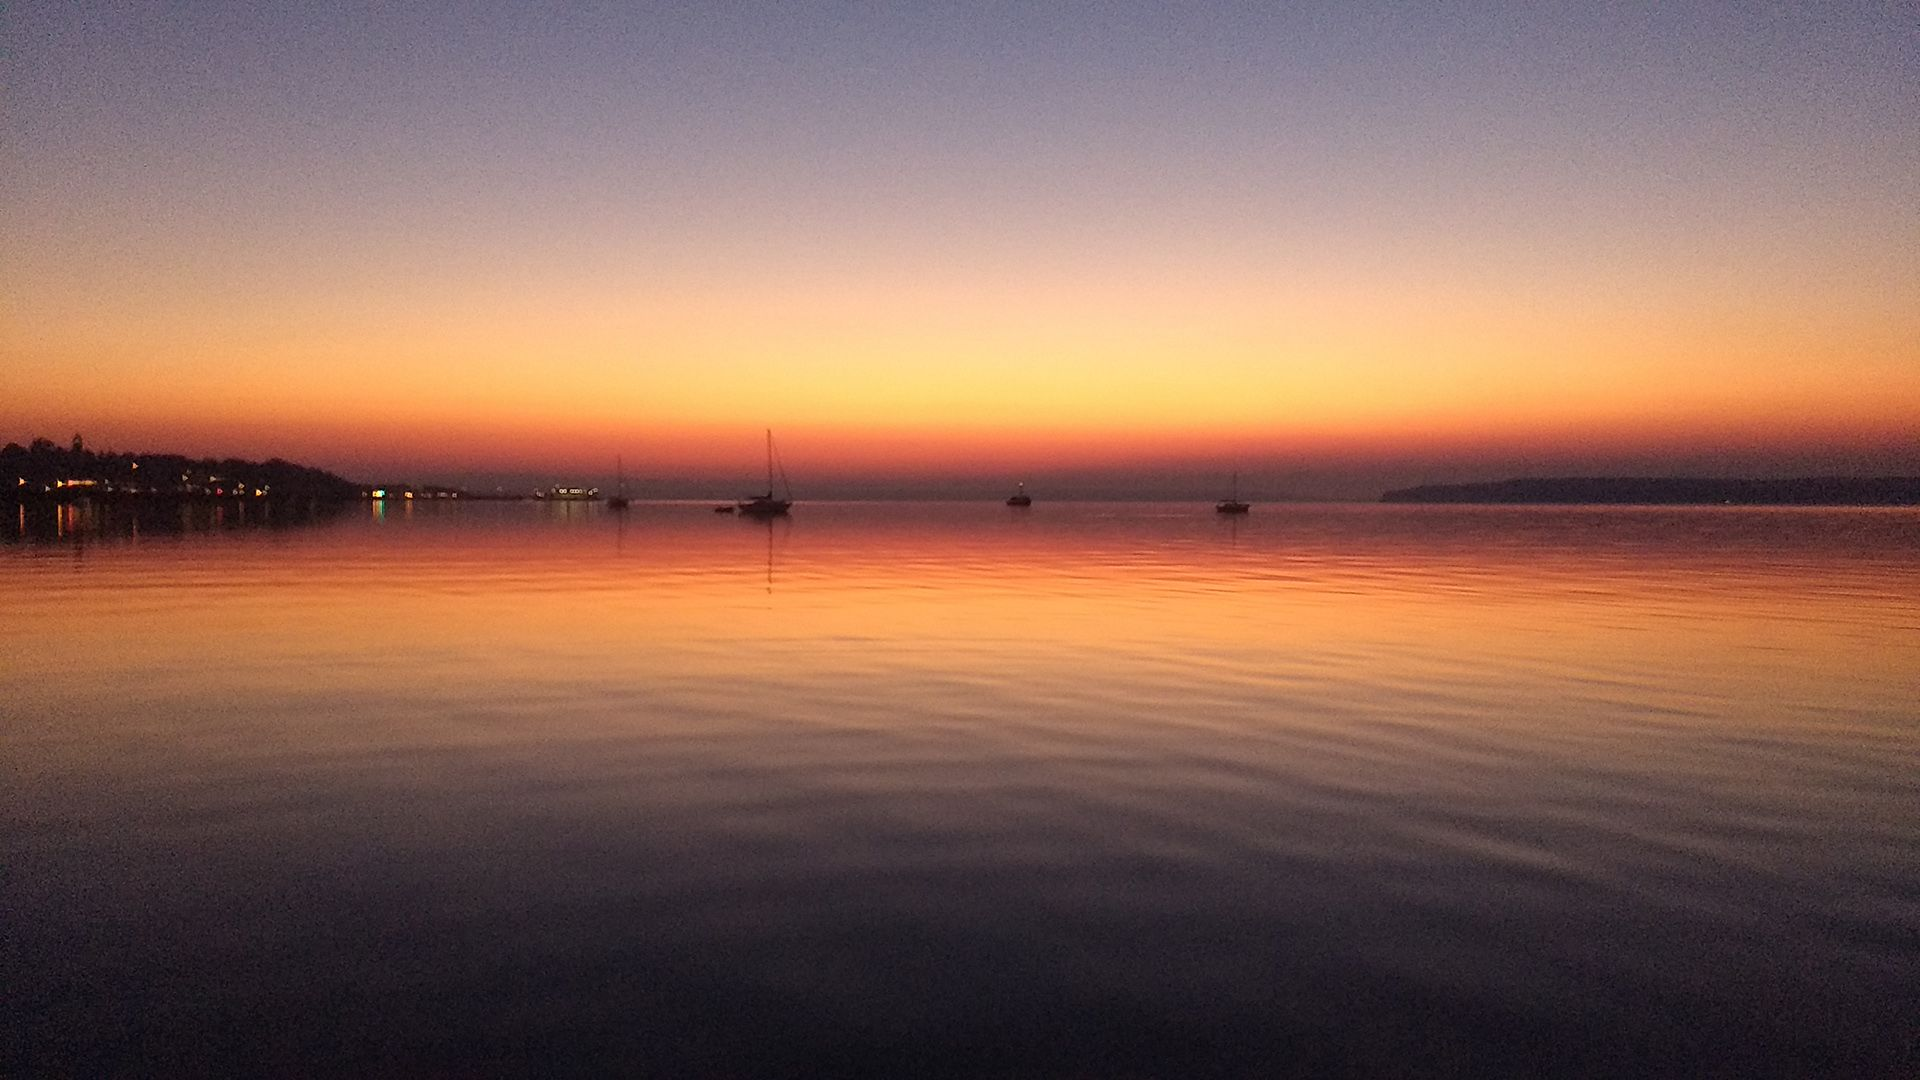 A sunrise with a very dark, saturated orange-purple horizon reflected on the water.